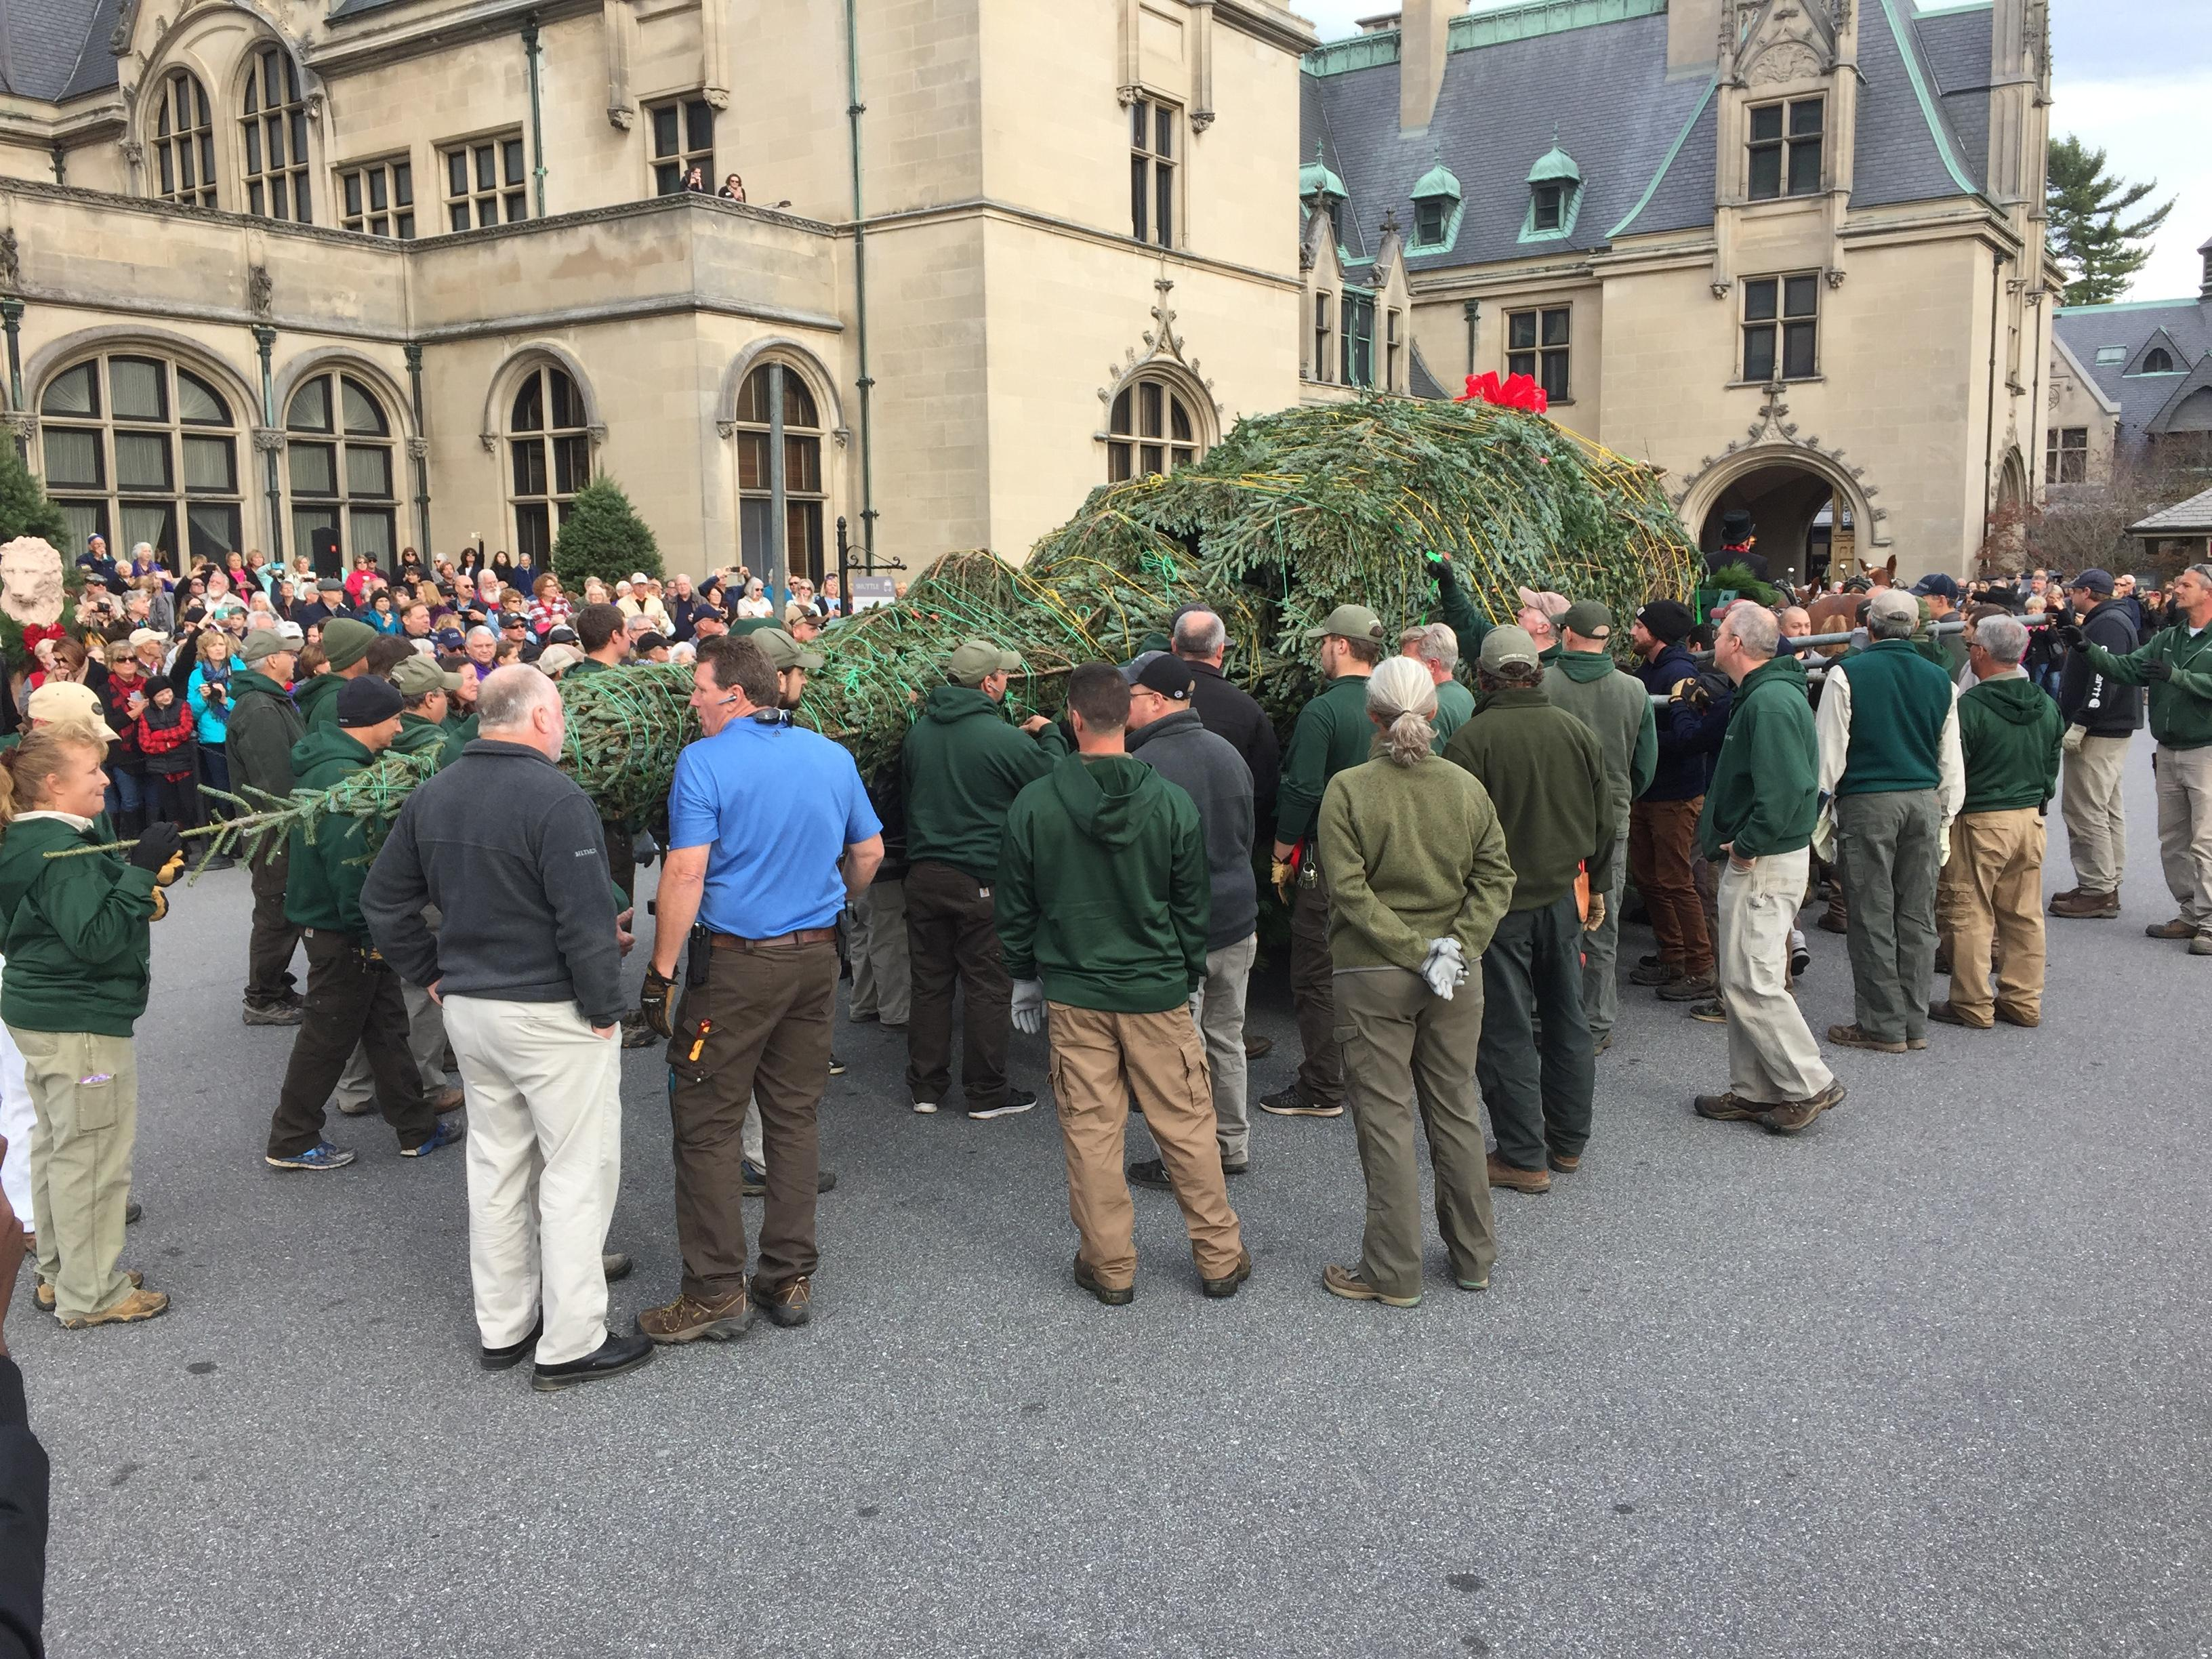 The annual Biltmore House Christmas tree raising event is being held Wednesday morning. (Photo credit: WLOS Staff)